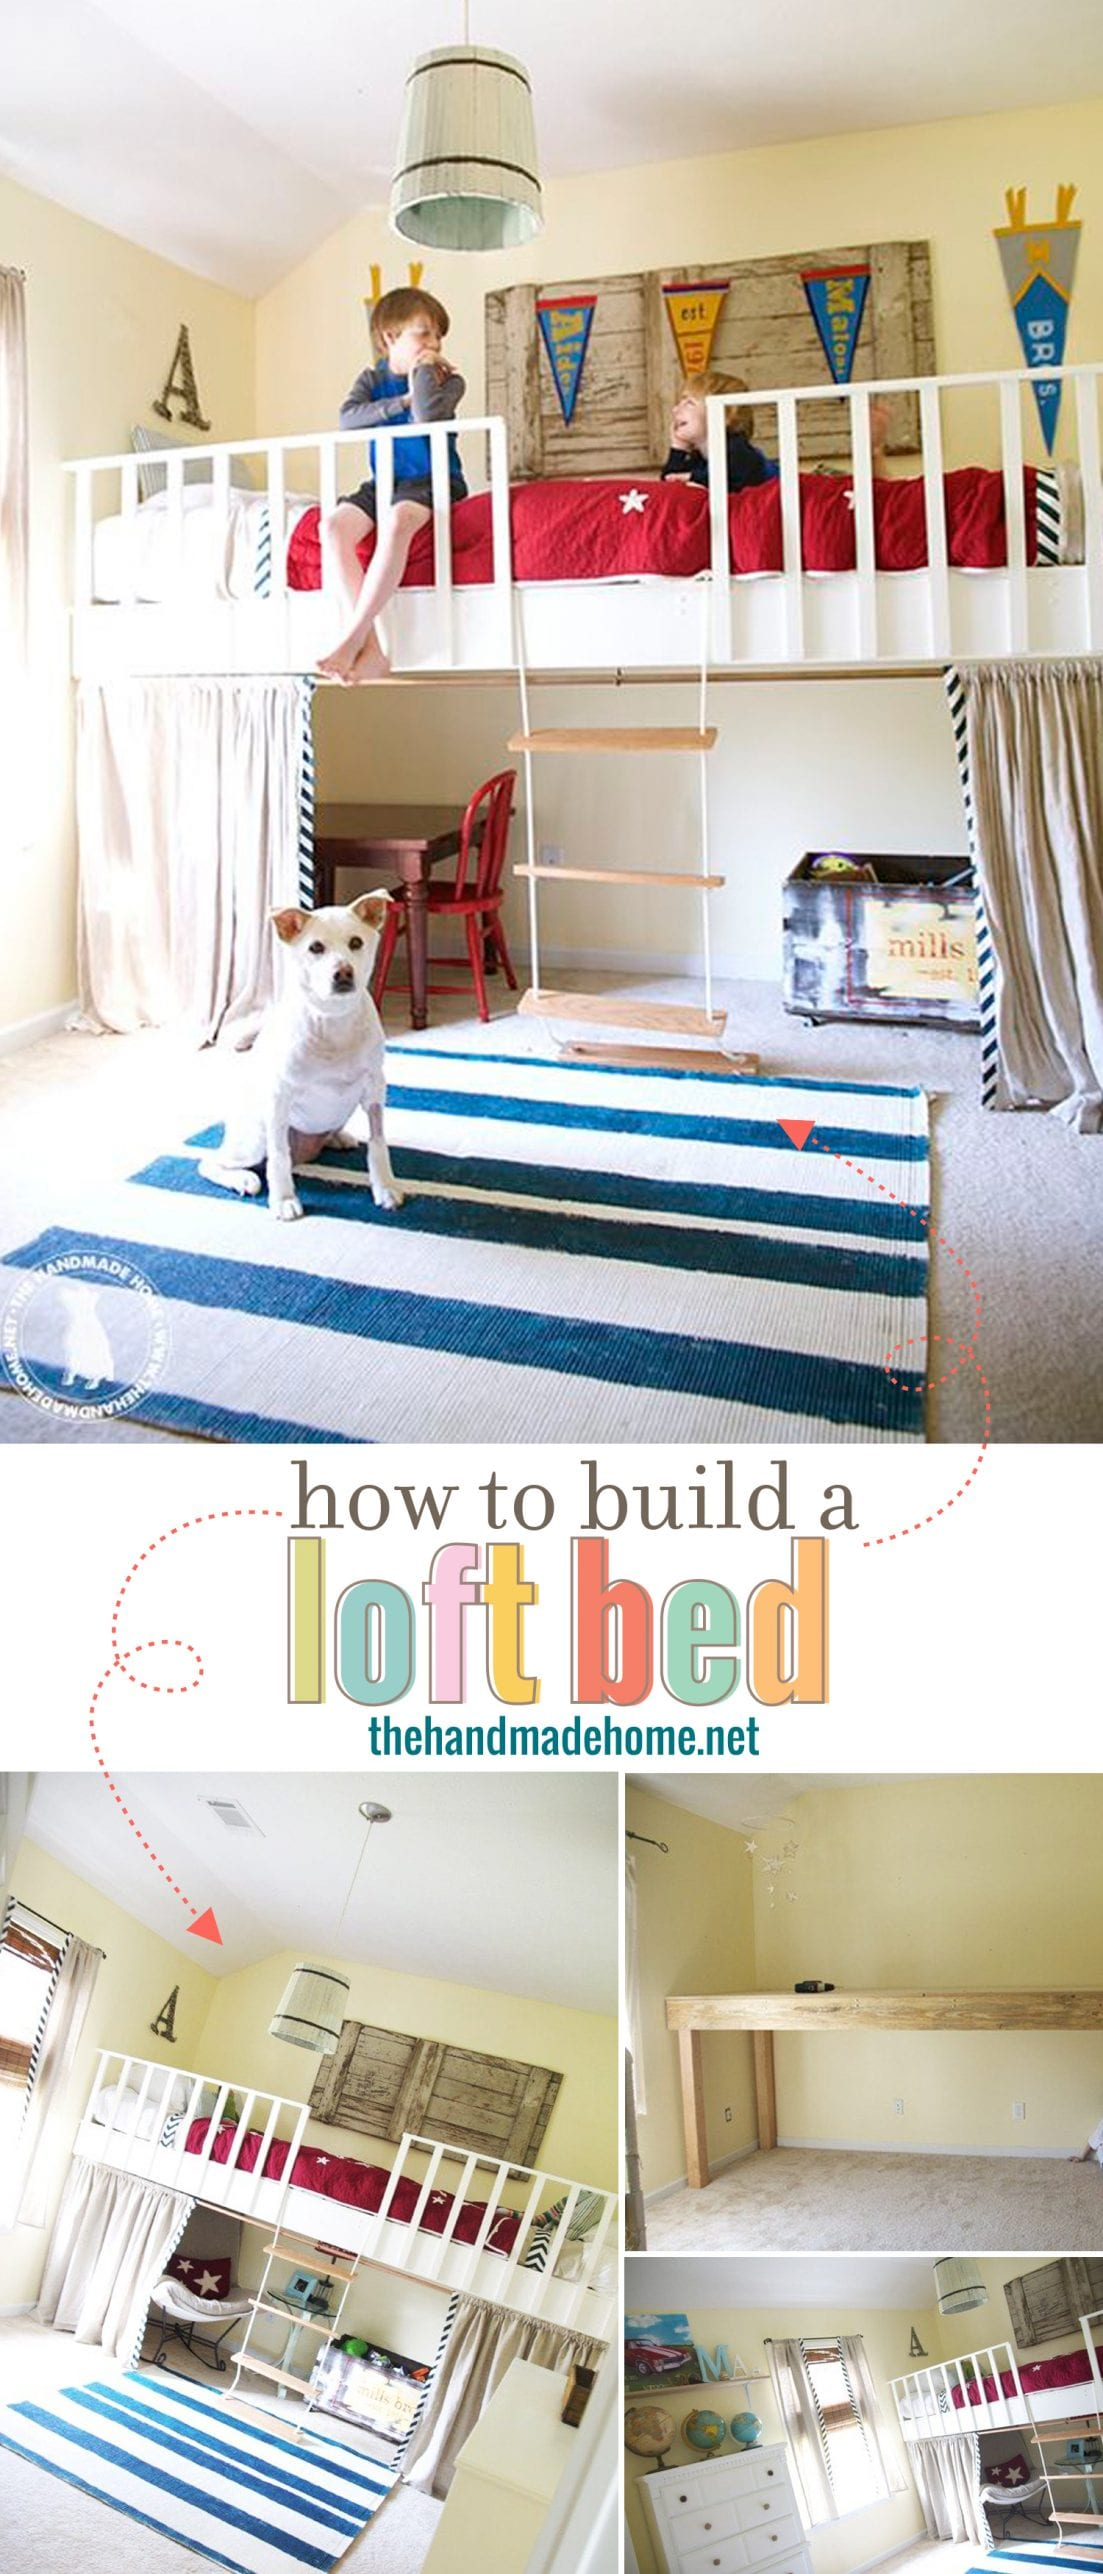 How To Build A Loft Bed An Easy Step By Step Anyone Can Do